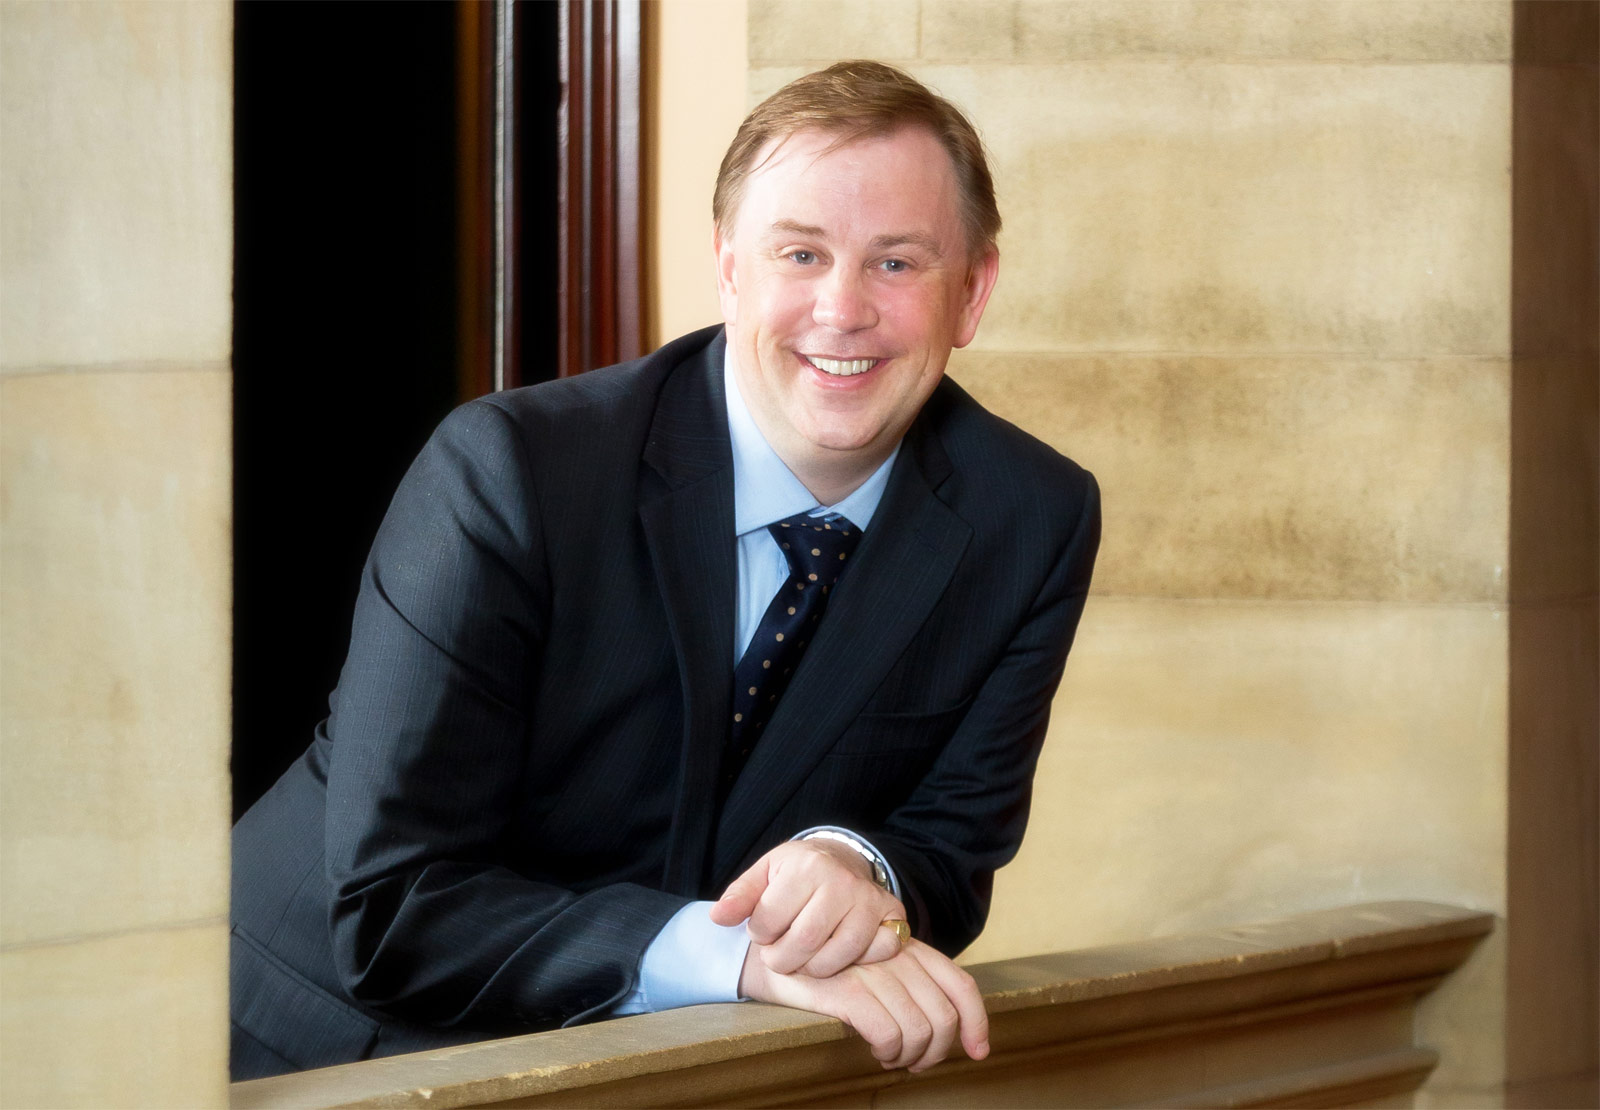 Paul Russell, co-founder and director of Luxury Academy London